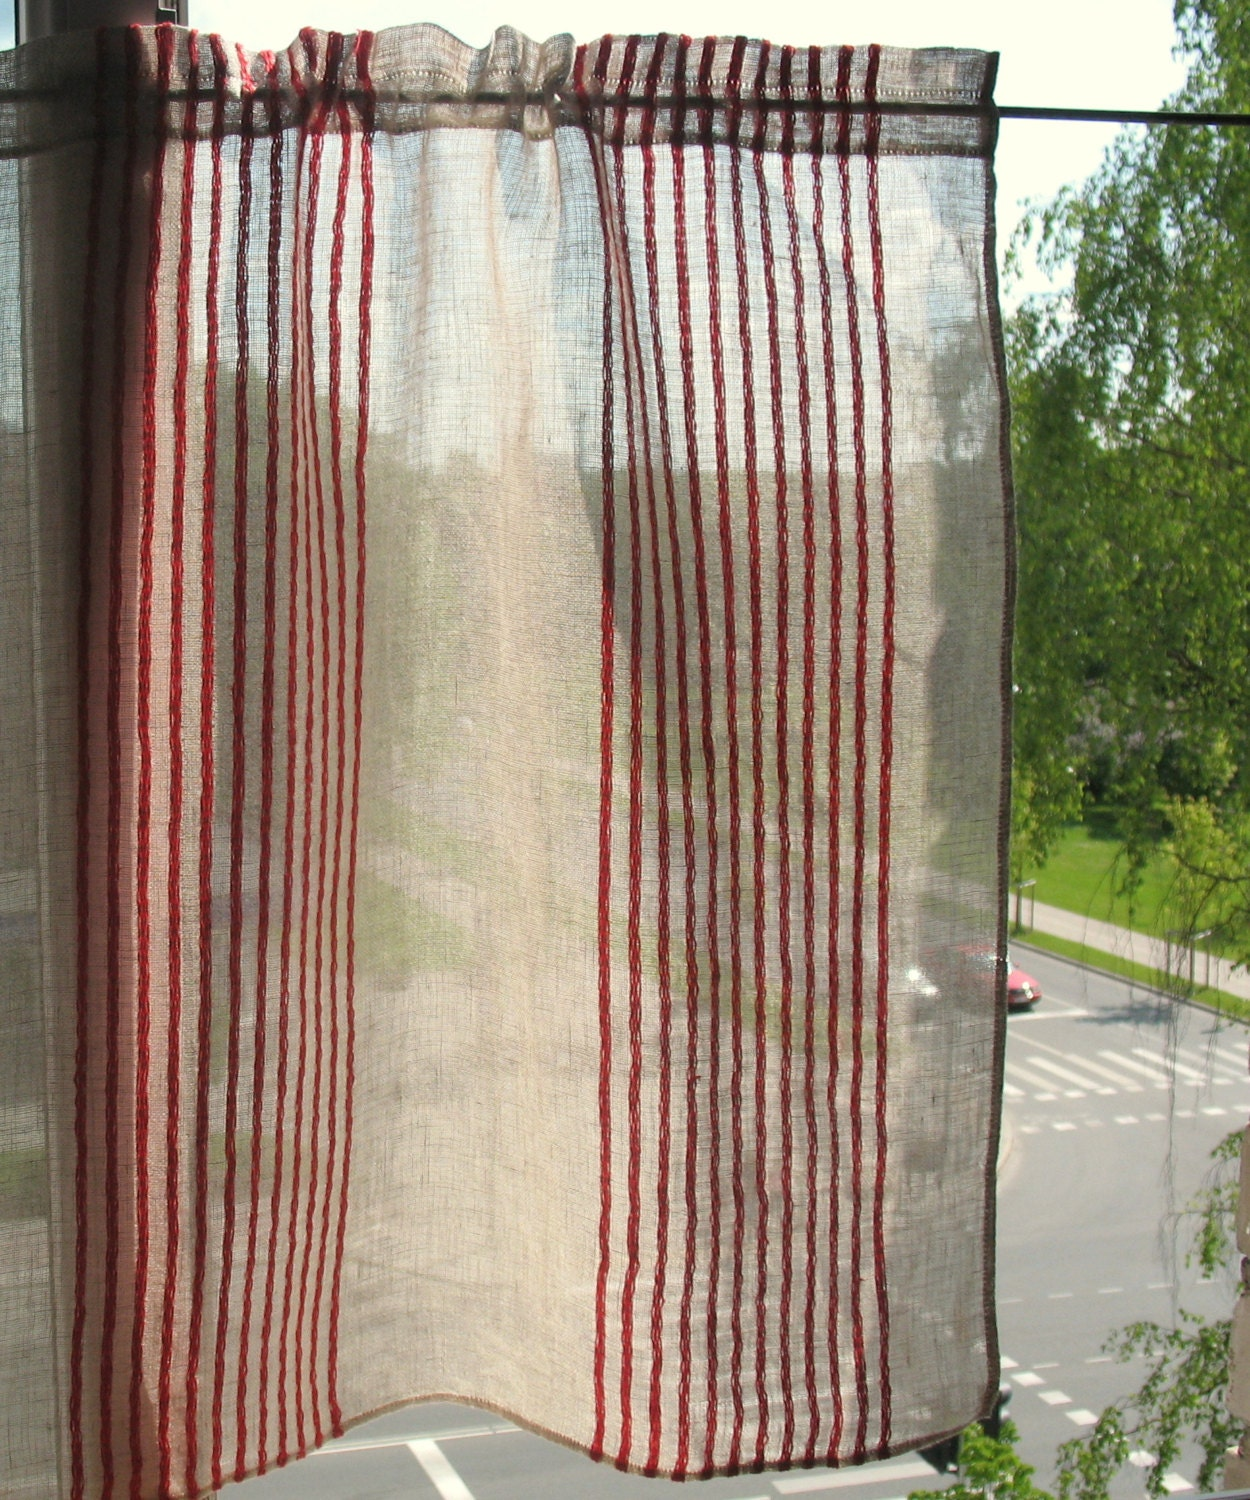 Red And Gray Kitchen Curtains: Curtain Lace Curtains Cafe Curtains Red Natural Gray Striped